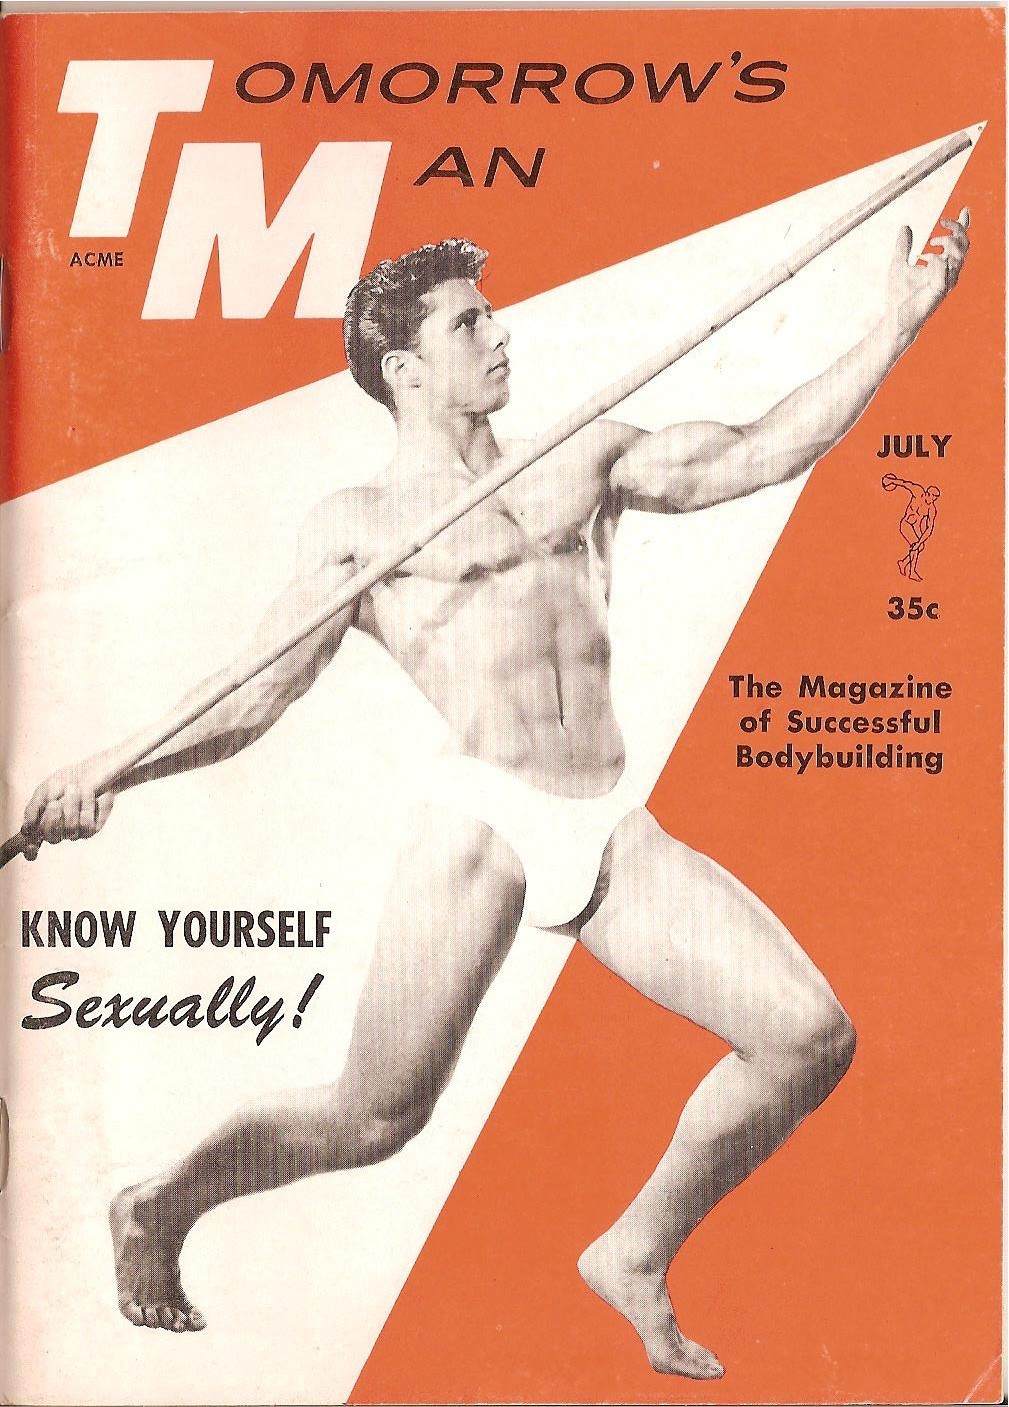 Tomorrow's Man (July 1959)